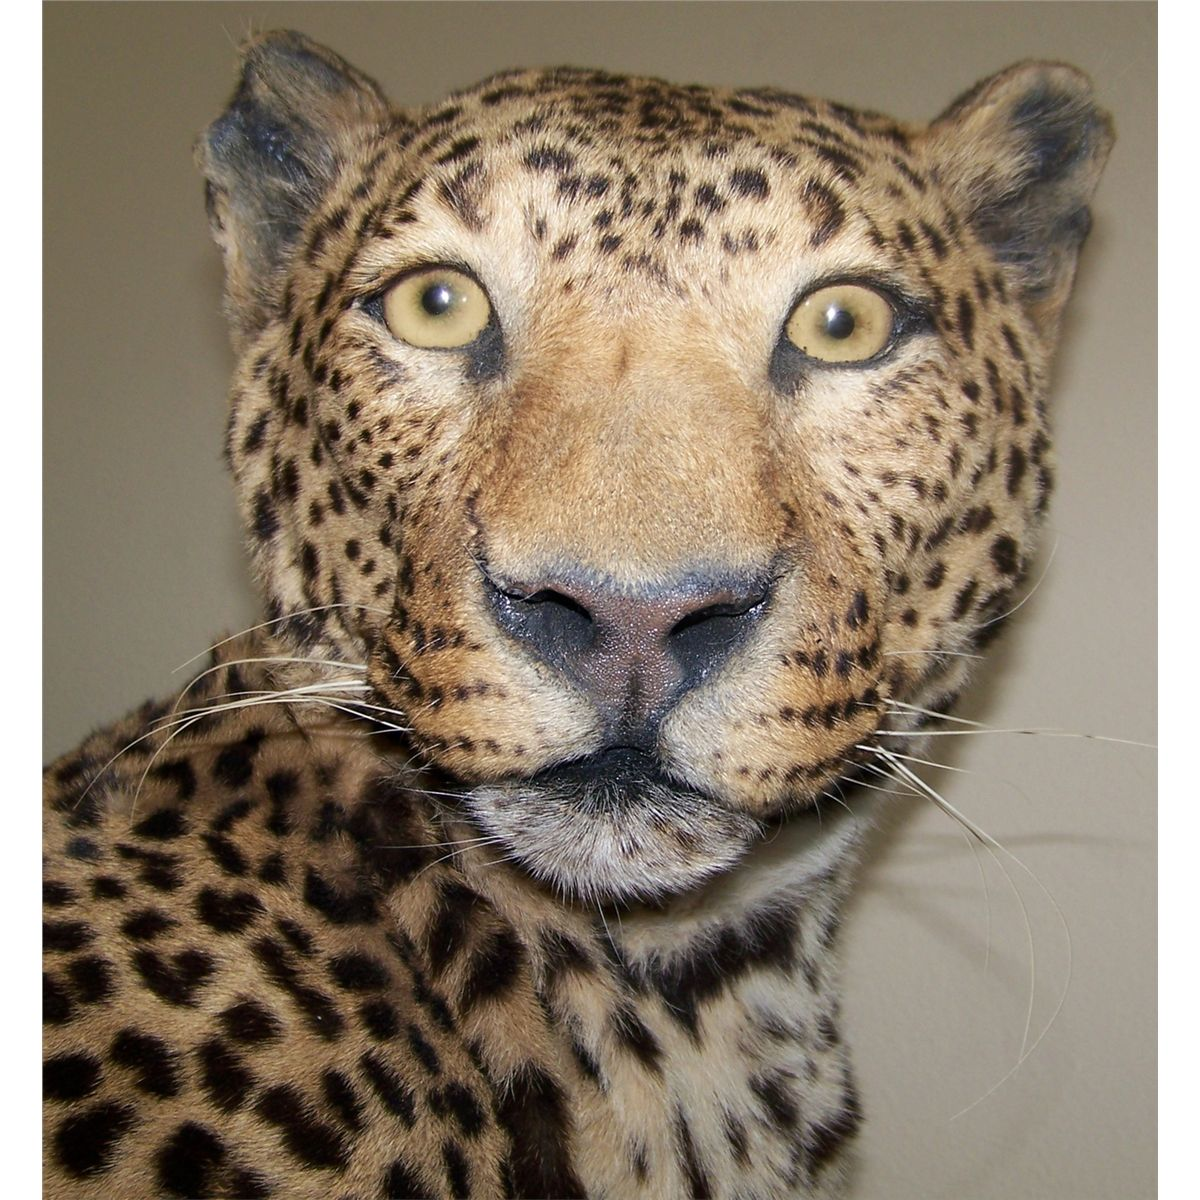 Leopard V Jaguar: Jaguar Taxidermy